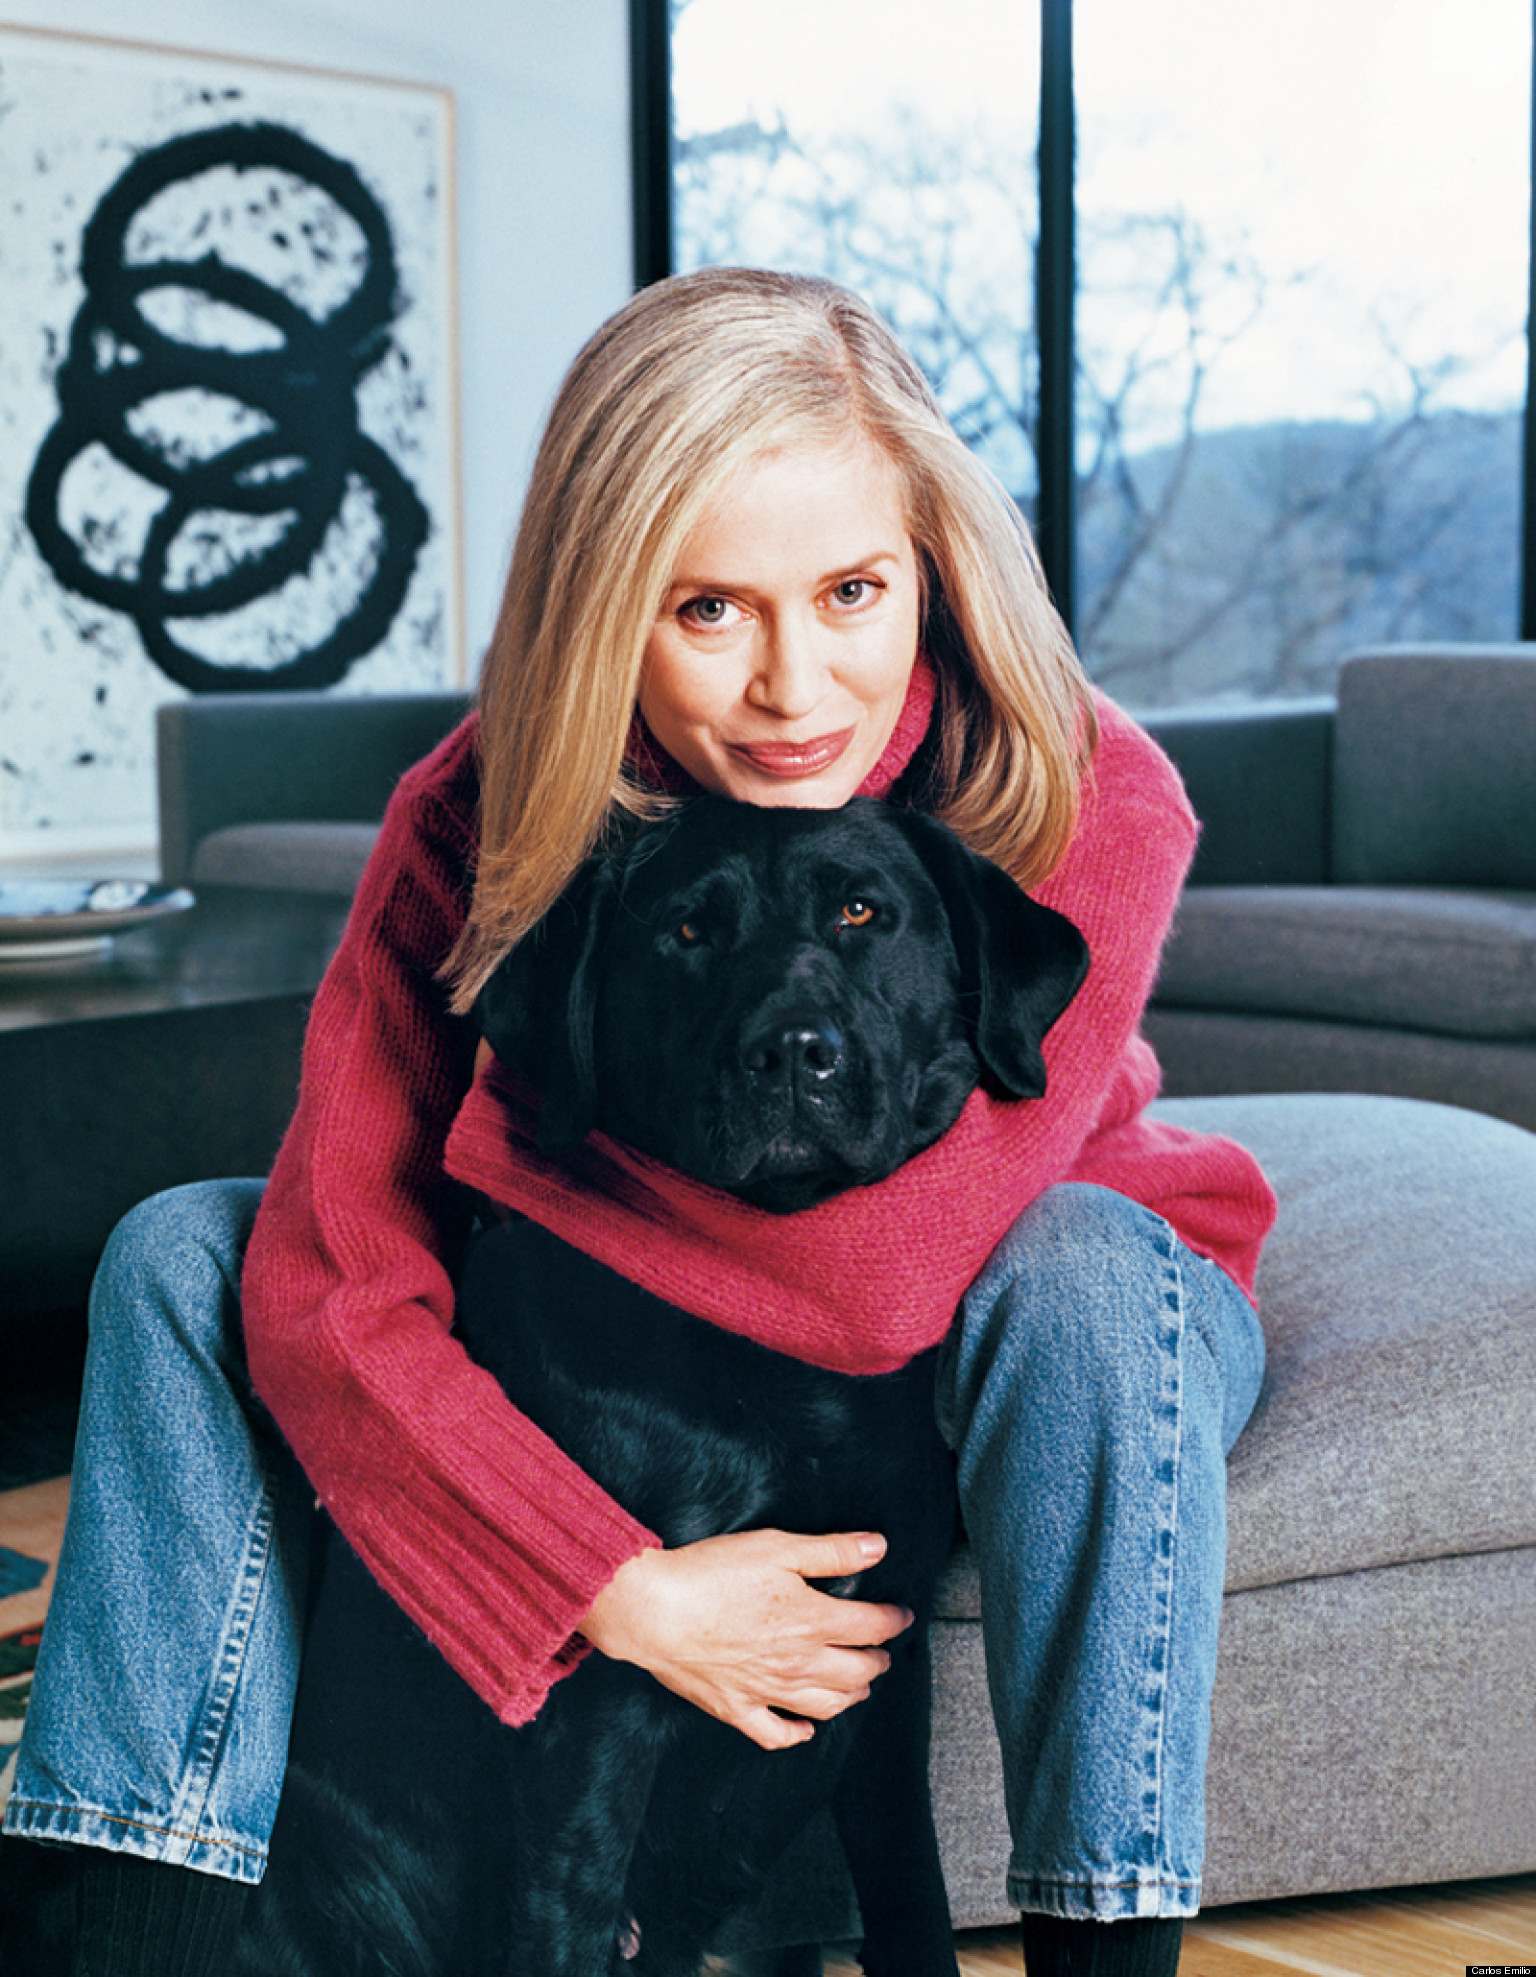 Dogs Mating Human Style O-guide-dogs-for-the-blind- ...